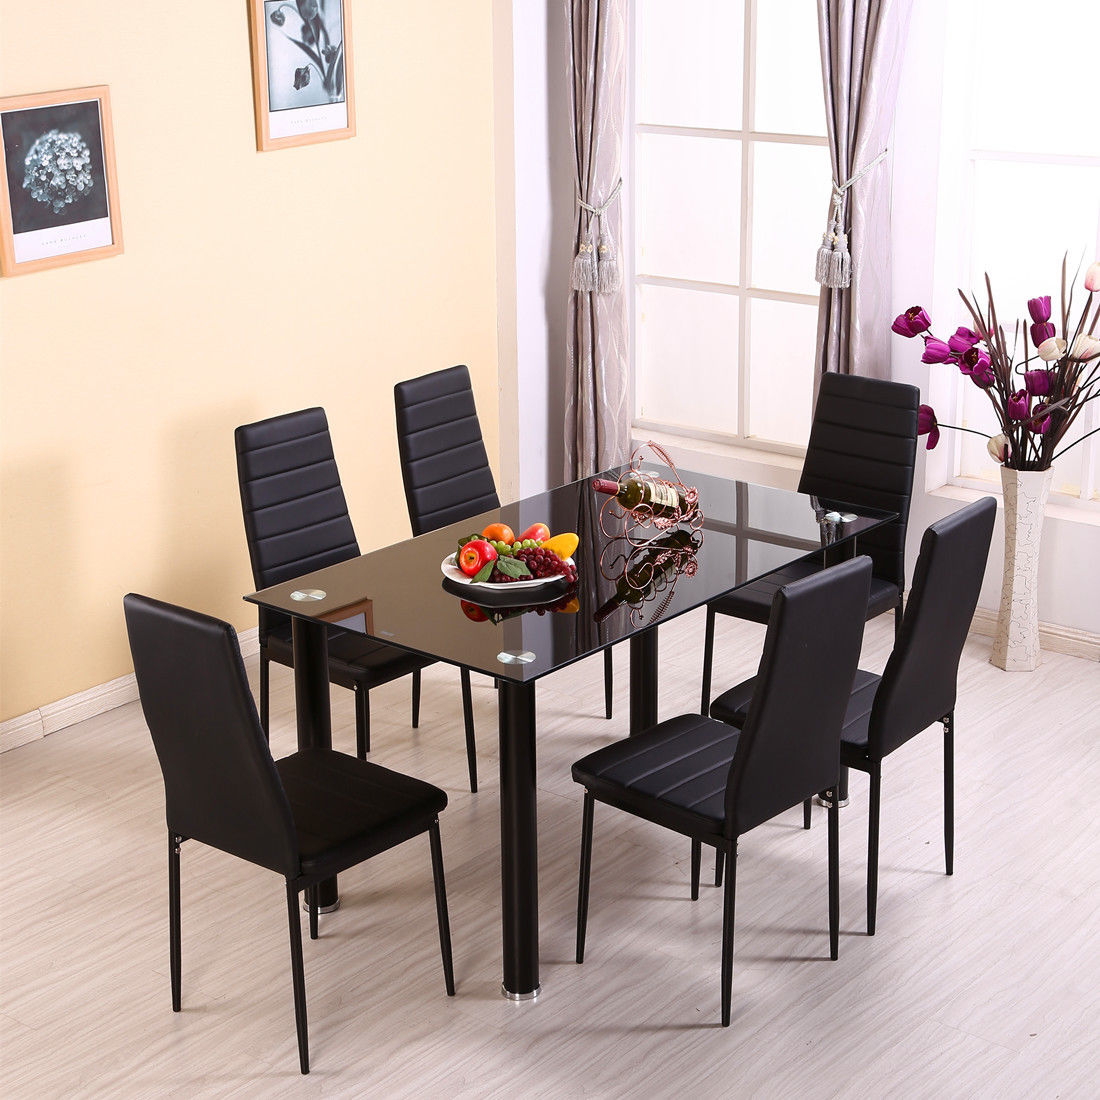 Set Of 4 Dining Room Chairs Kitchen Set Faux Leather: 140CM GLASS DINING TABLE SET AND WITH 4 FAUX LEATHER